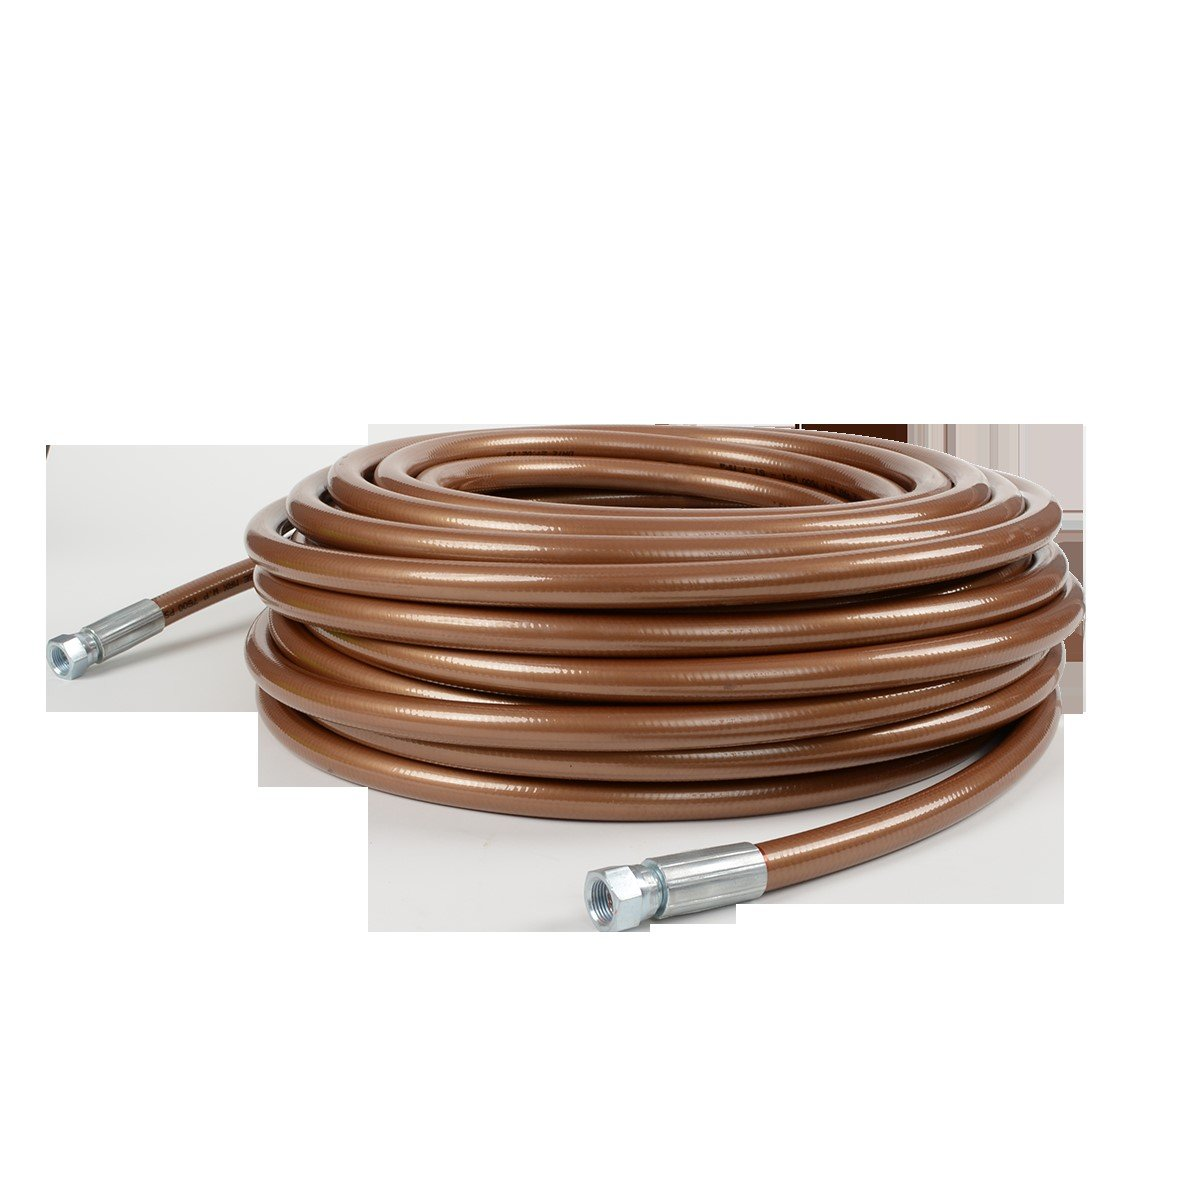 Titan High Pressure 3/8'' x 50' Bronze Airless Paint Spray Hose 7500psi - OEM by Titan